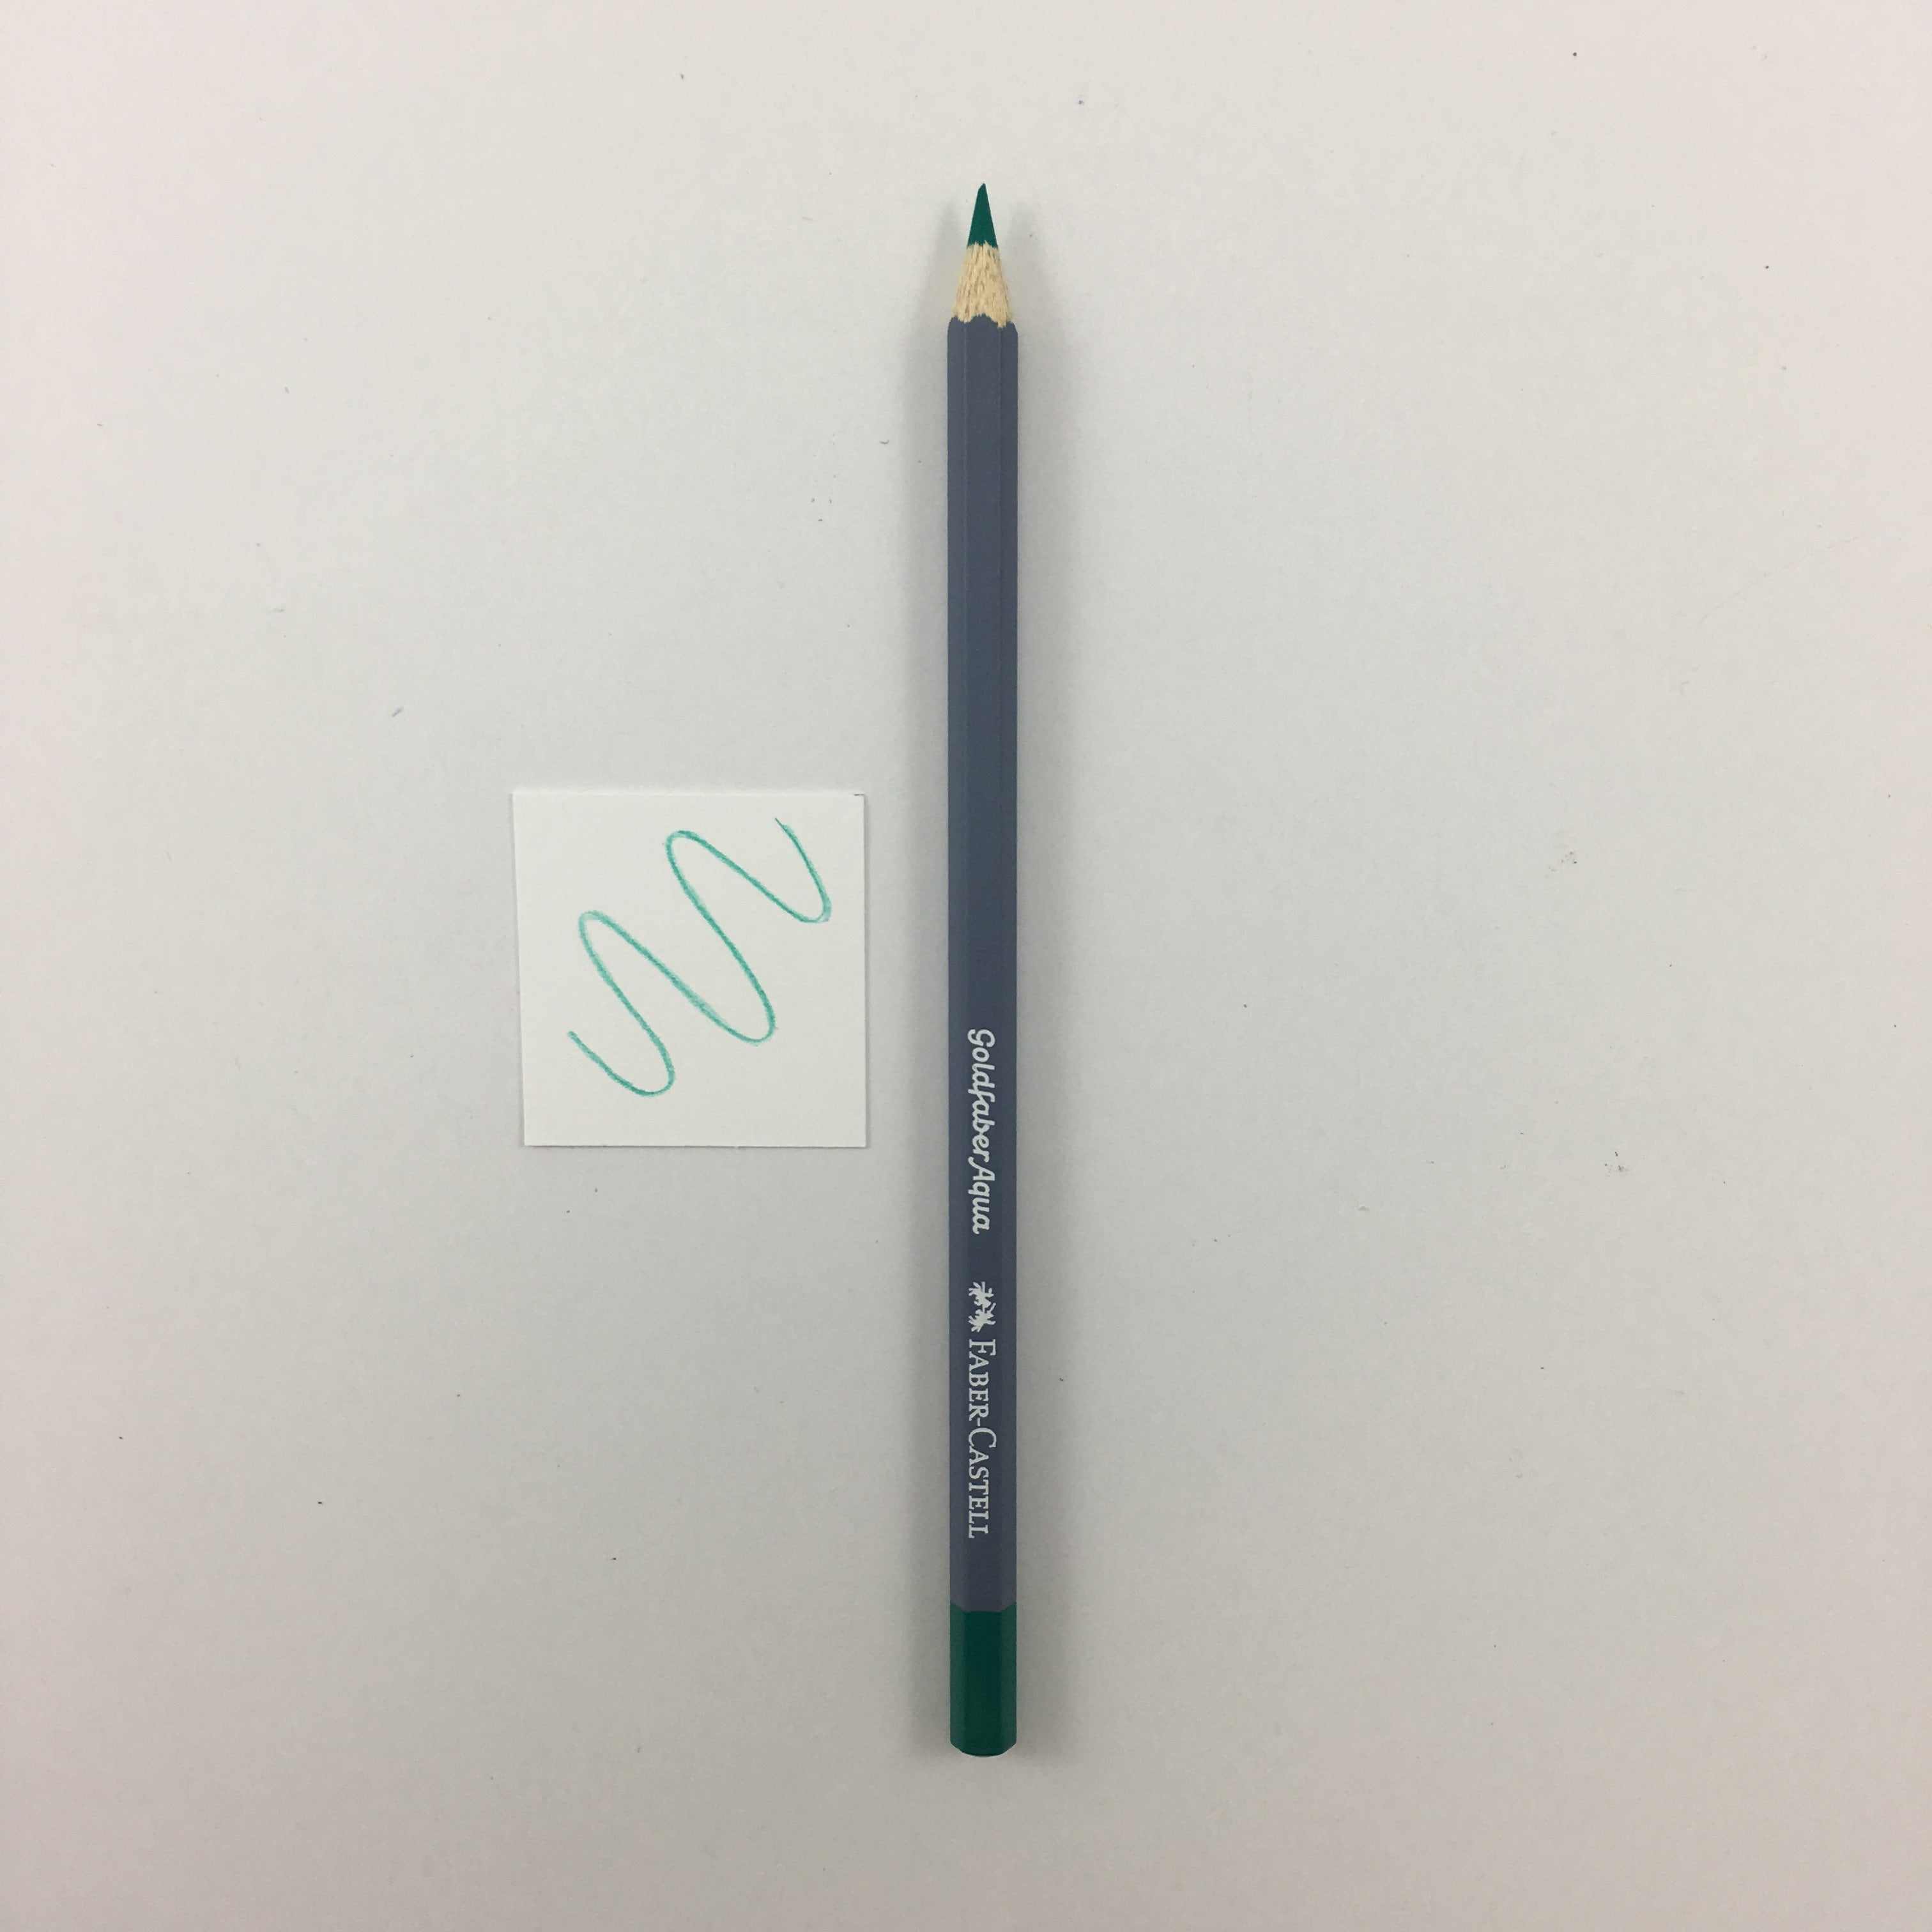 Faber-Castell Goldfaber Aqua Watercolor Pencils - Individuals - 161 - Pthalo Green by Faber-Castell - K. A. Artist Shop